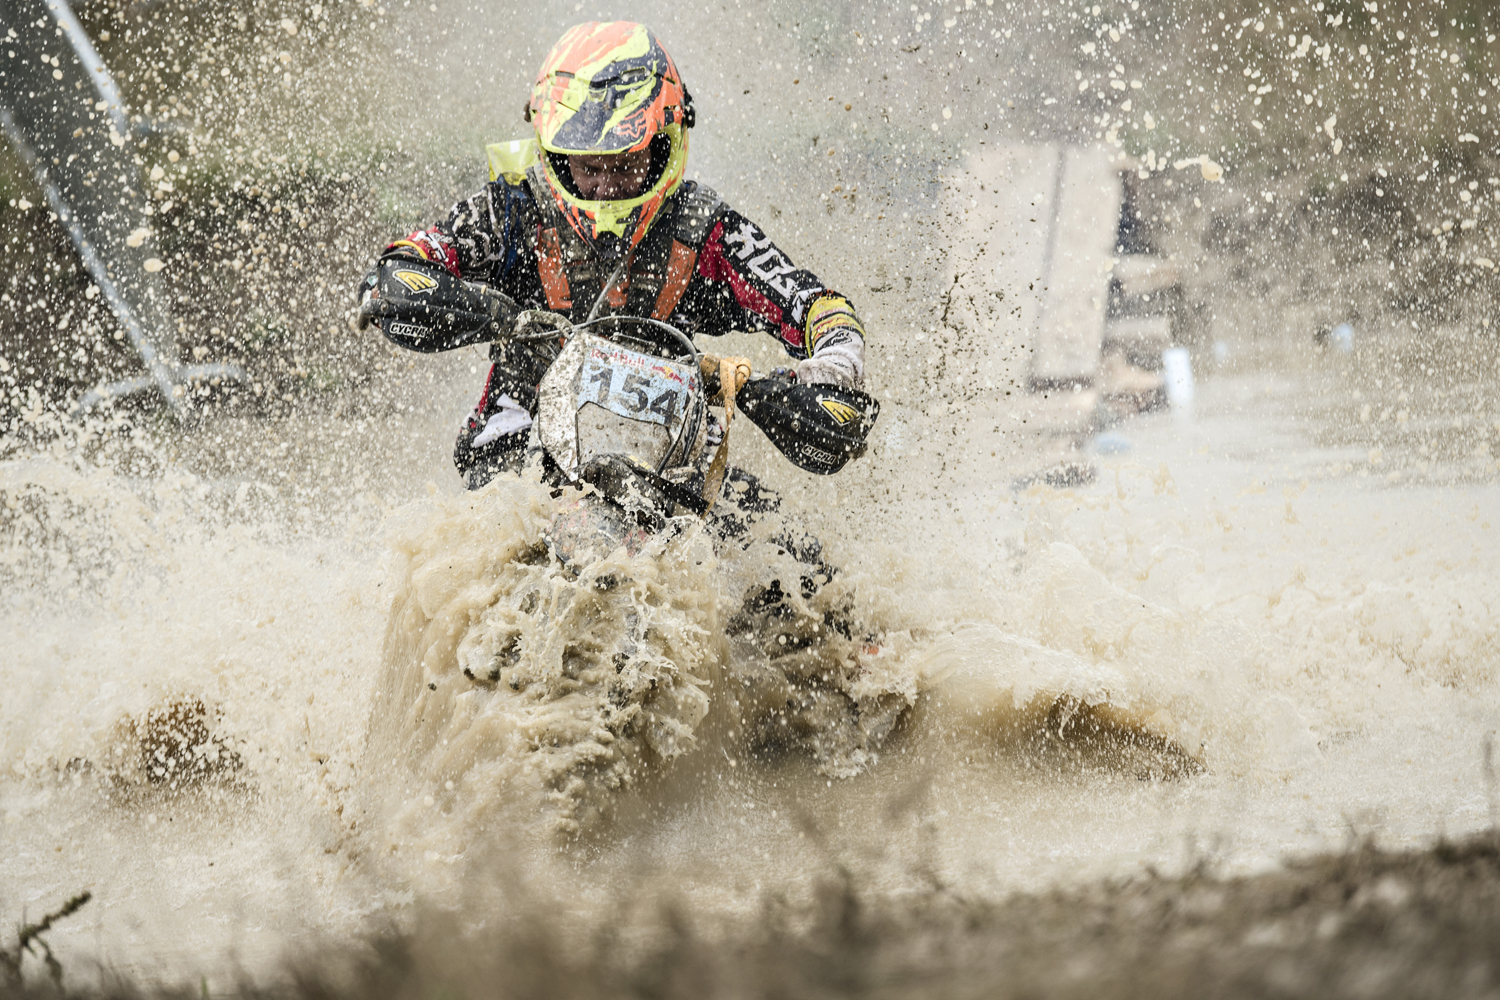 A competitor races through the mud during the Red Bull Romaniacs in Sibiu, Romania.